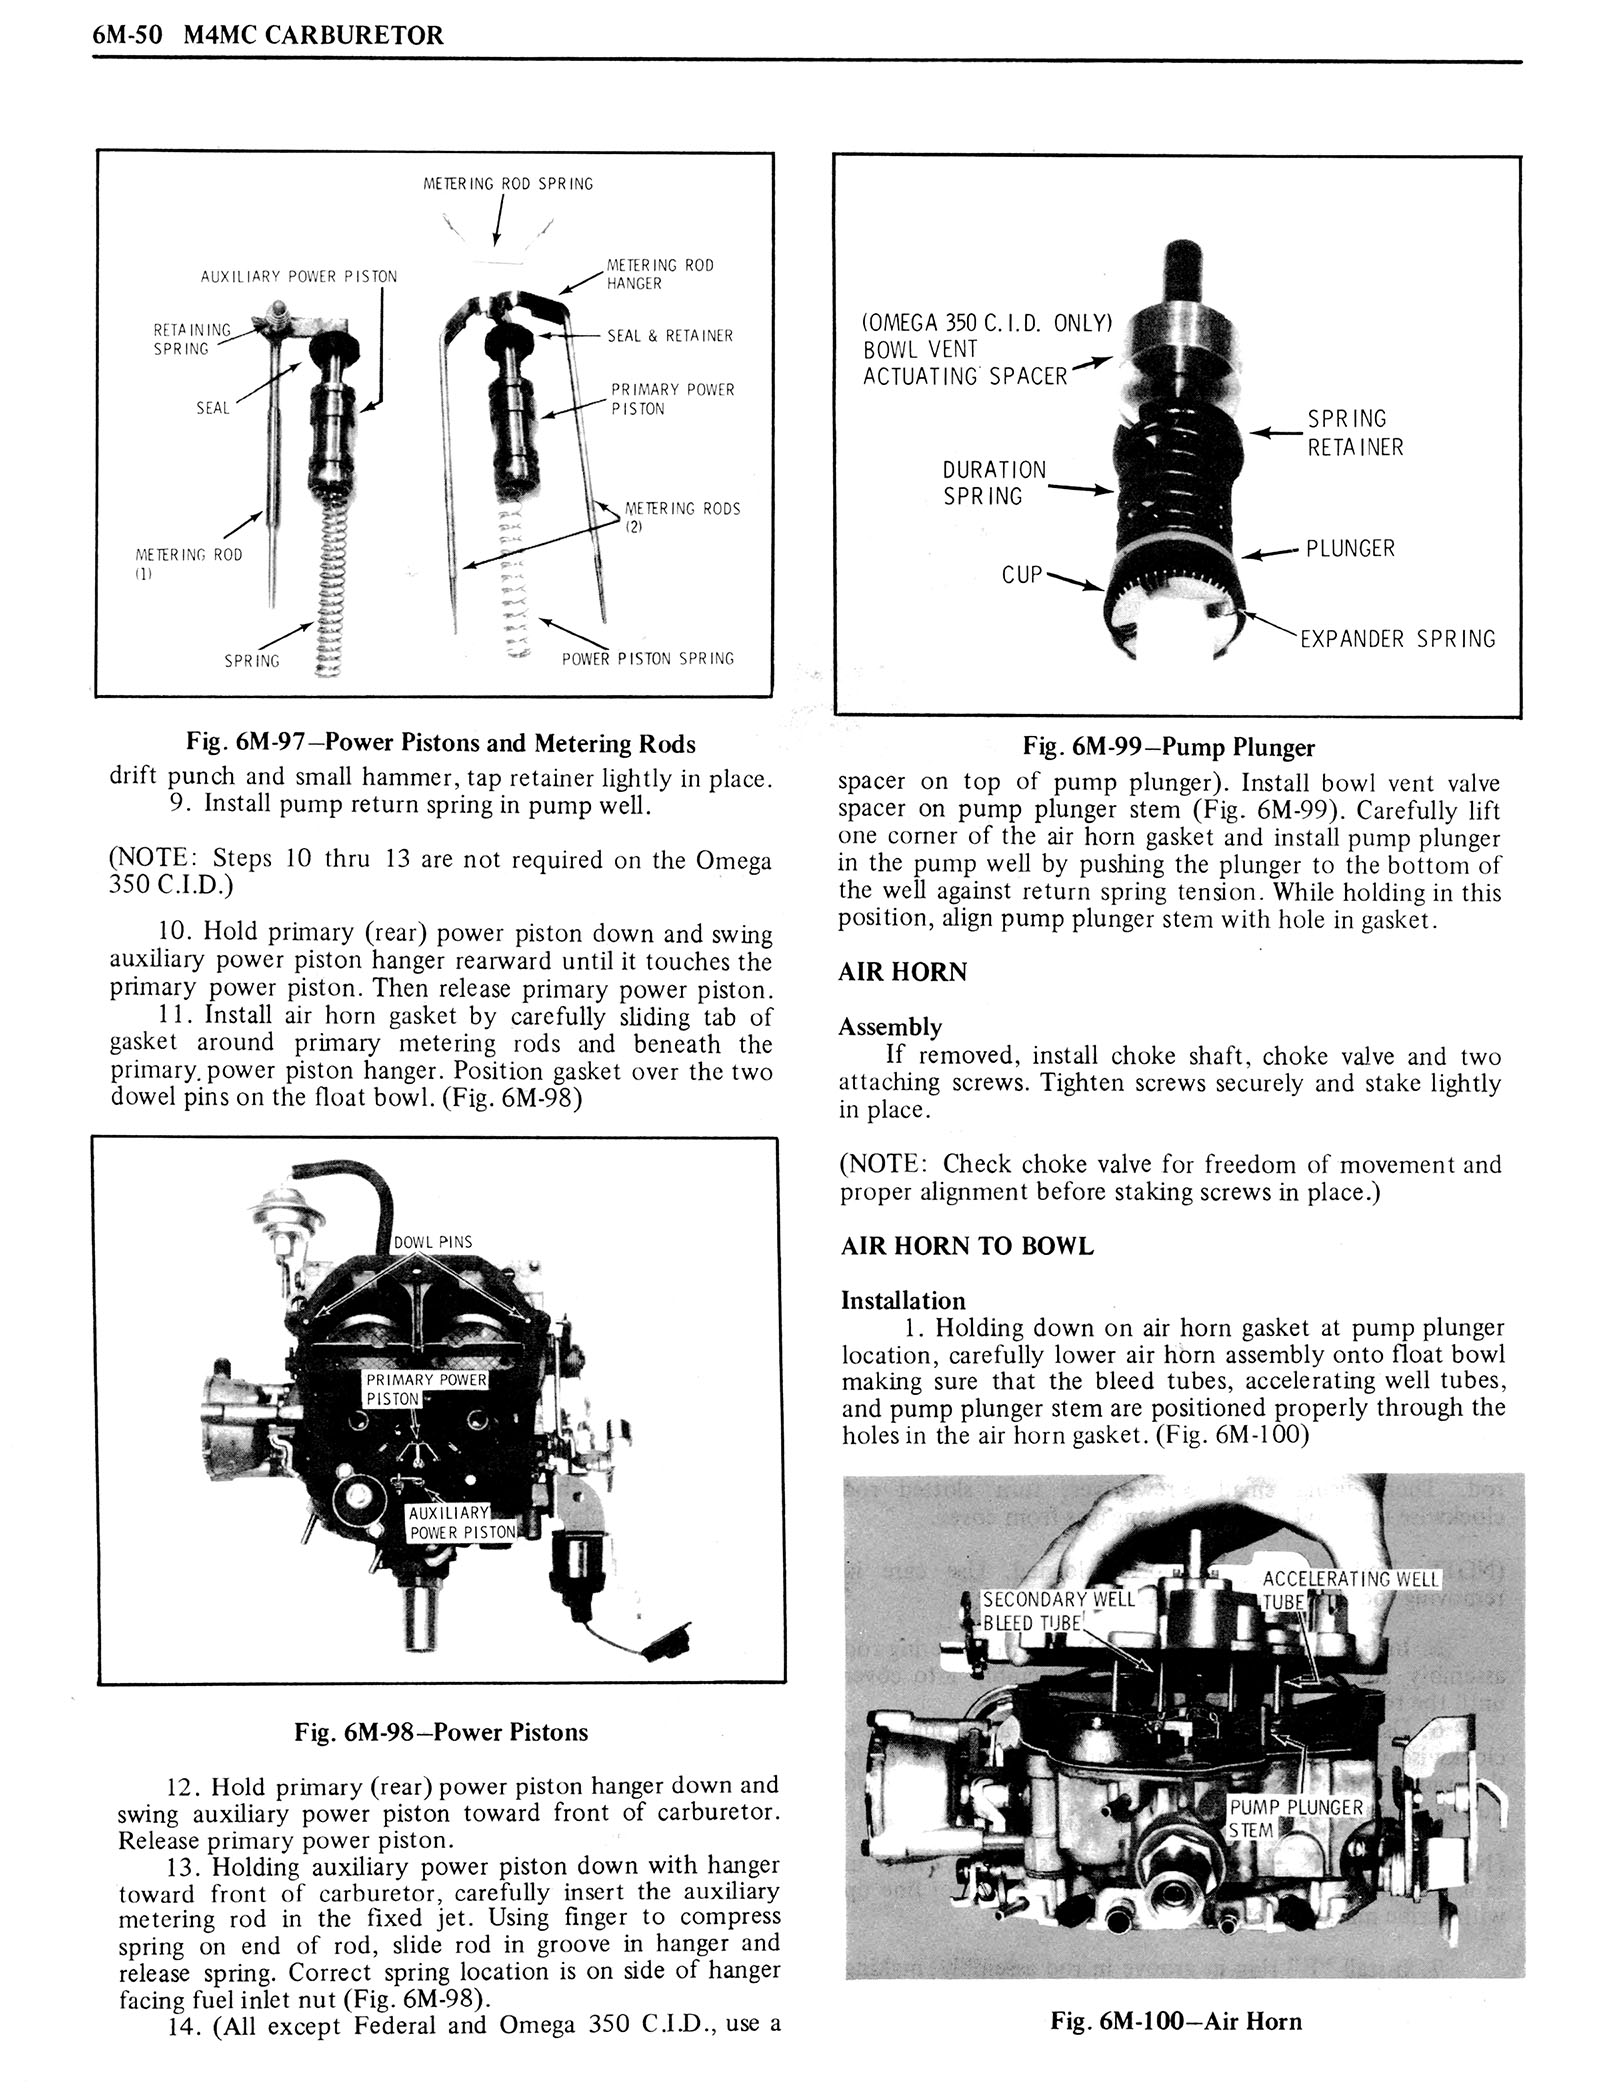 1976 Oldsmobile Service Manual page 604 of 1390